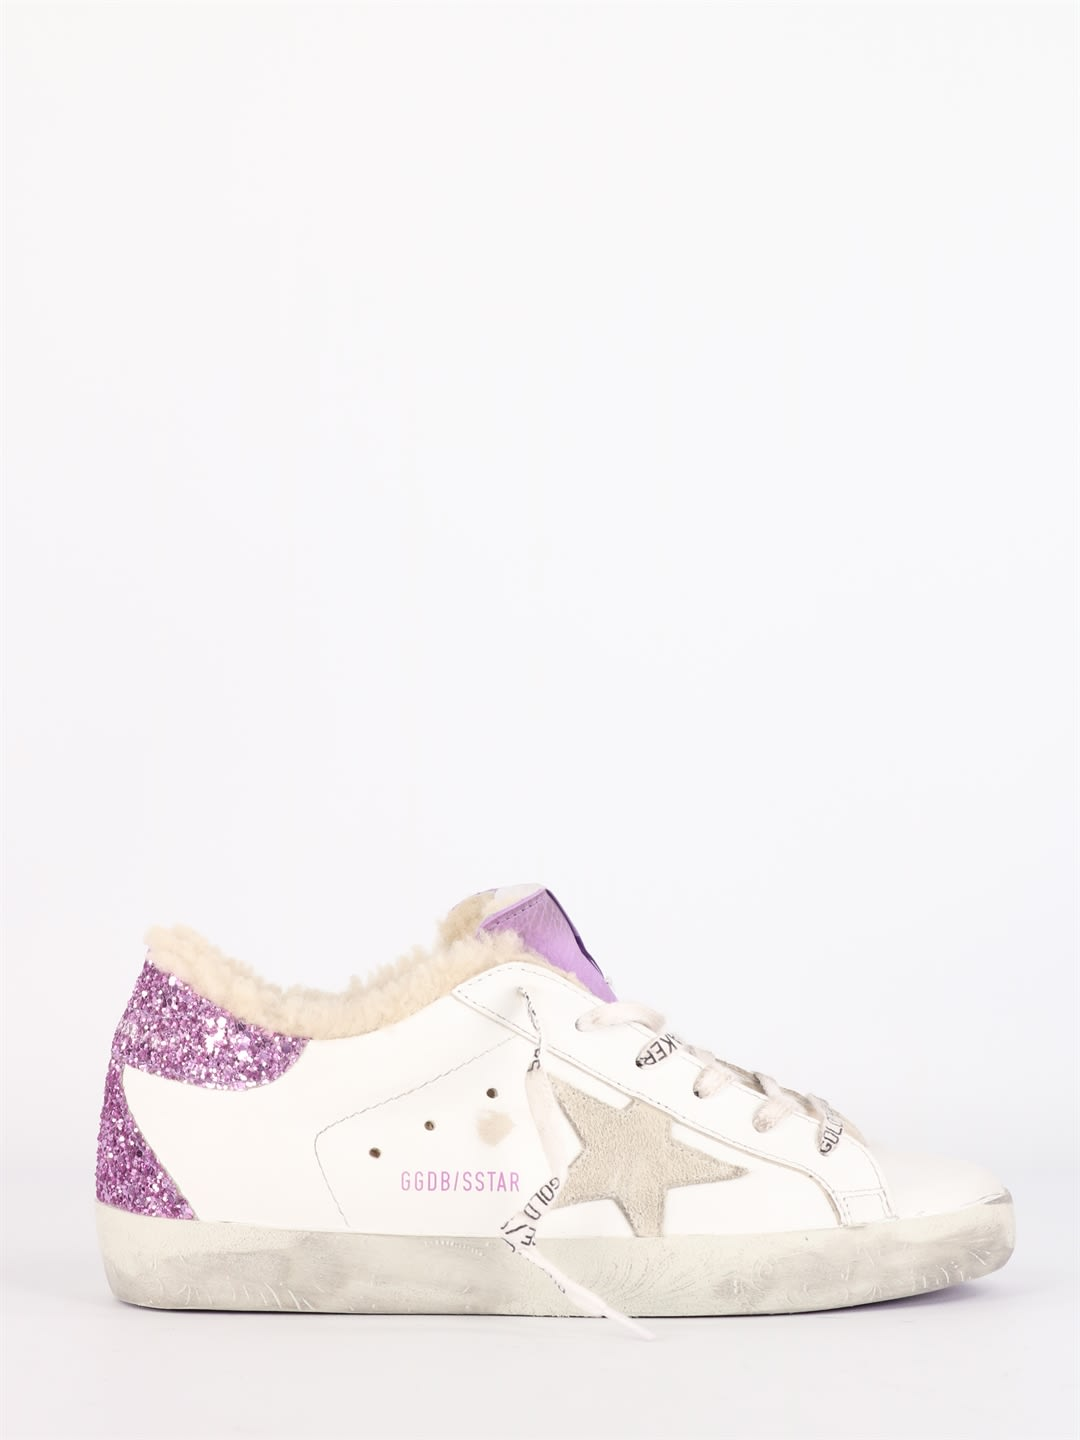 Golden Goose Super-star Sneakers Shearling Lining